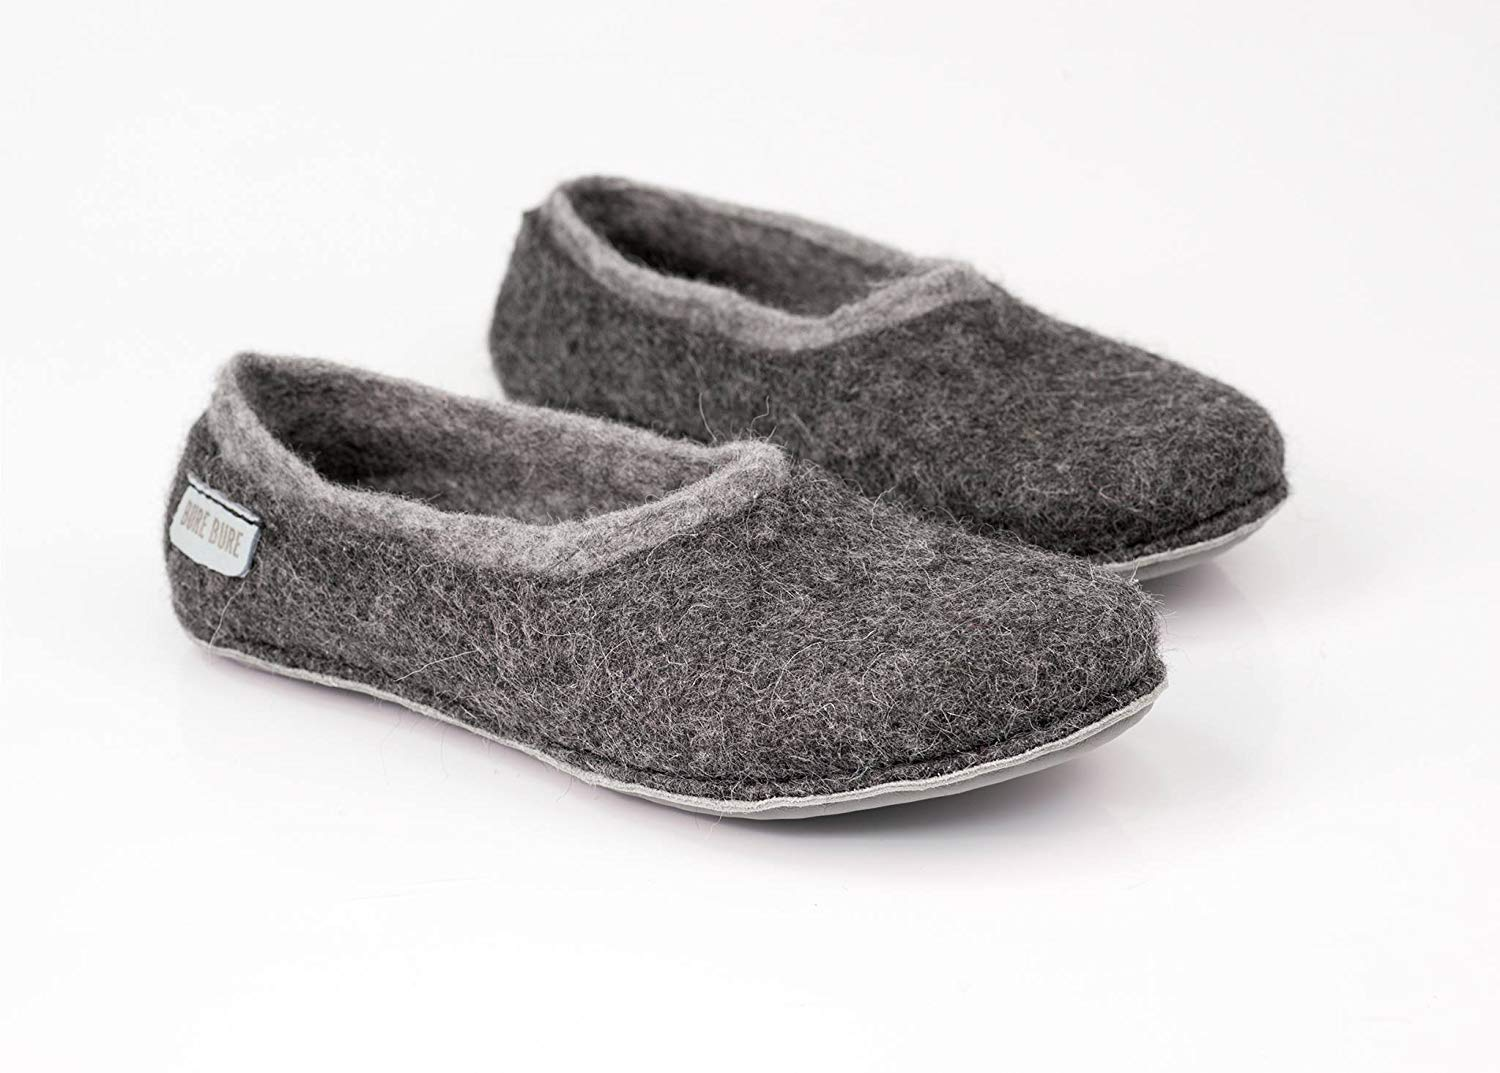 63698f69236a Get Quotations · Gray felted wool slippers for adult men, Handmade boiled  wool slippers